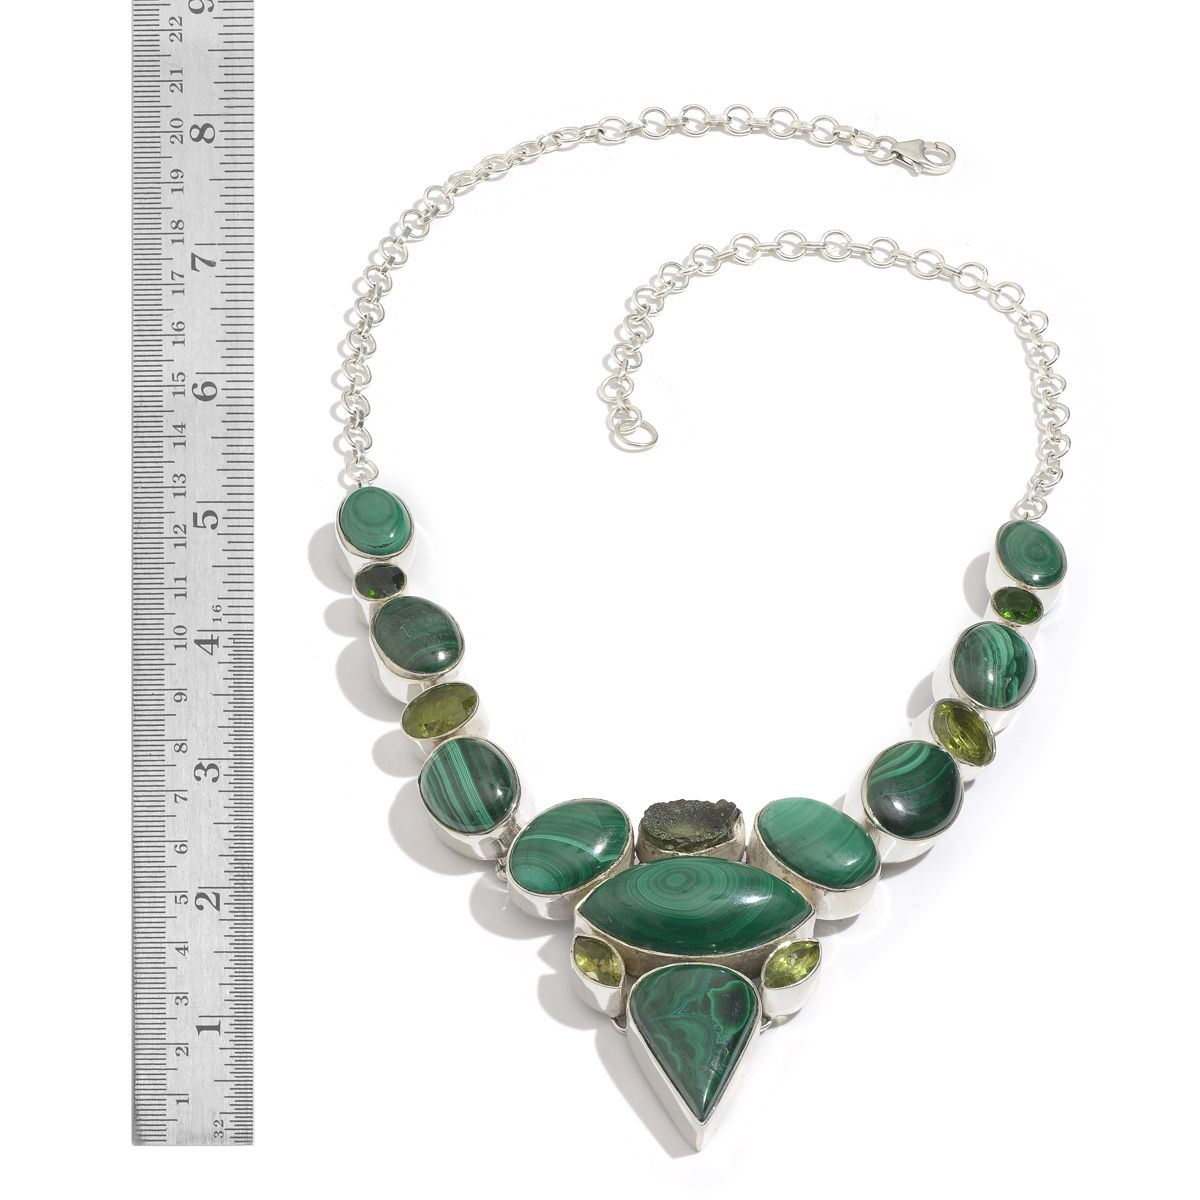 Artisan Crafted African Malachite, Hebei Peridot, Bohemian Moldavite,  Russian Diopside Necklace (18 in) in Sterling Silver Nickel Free TGW  165 500